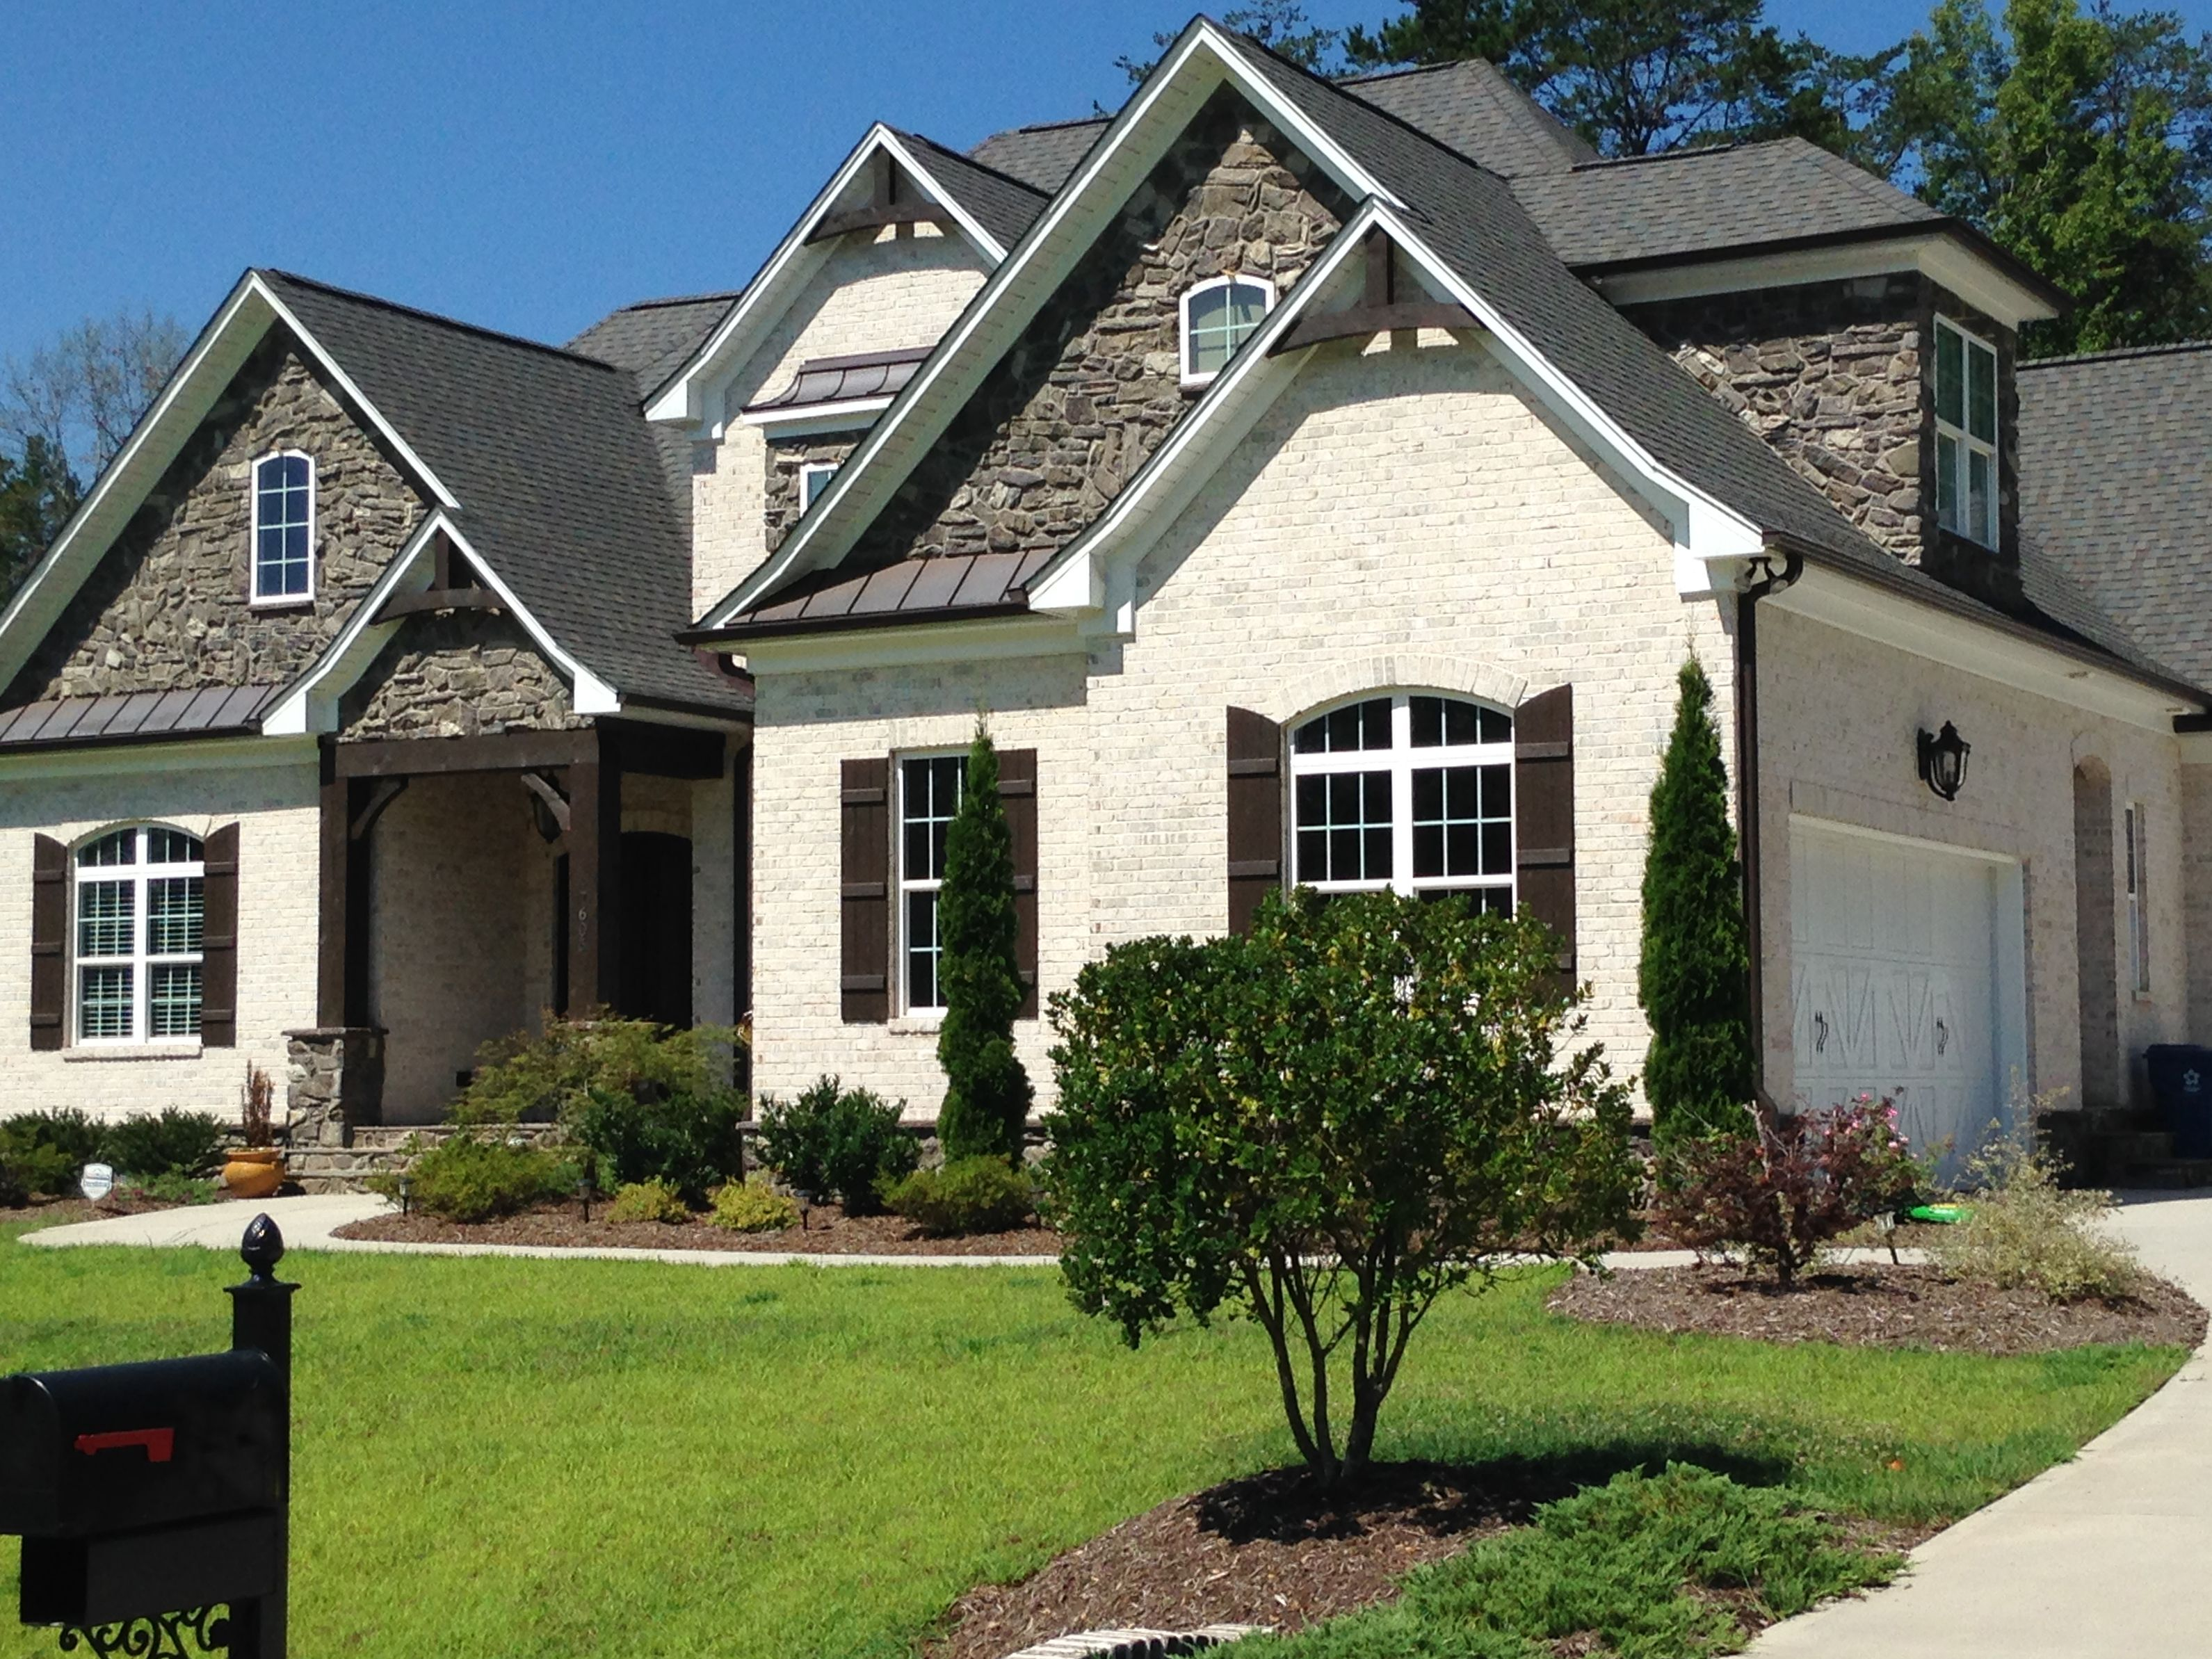 White brick options chesapeake pearl here with gray roof for Roof accents